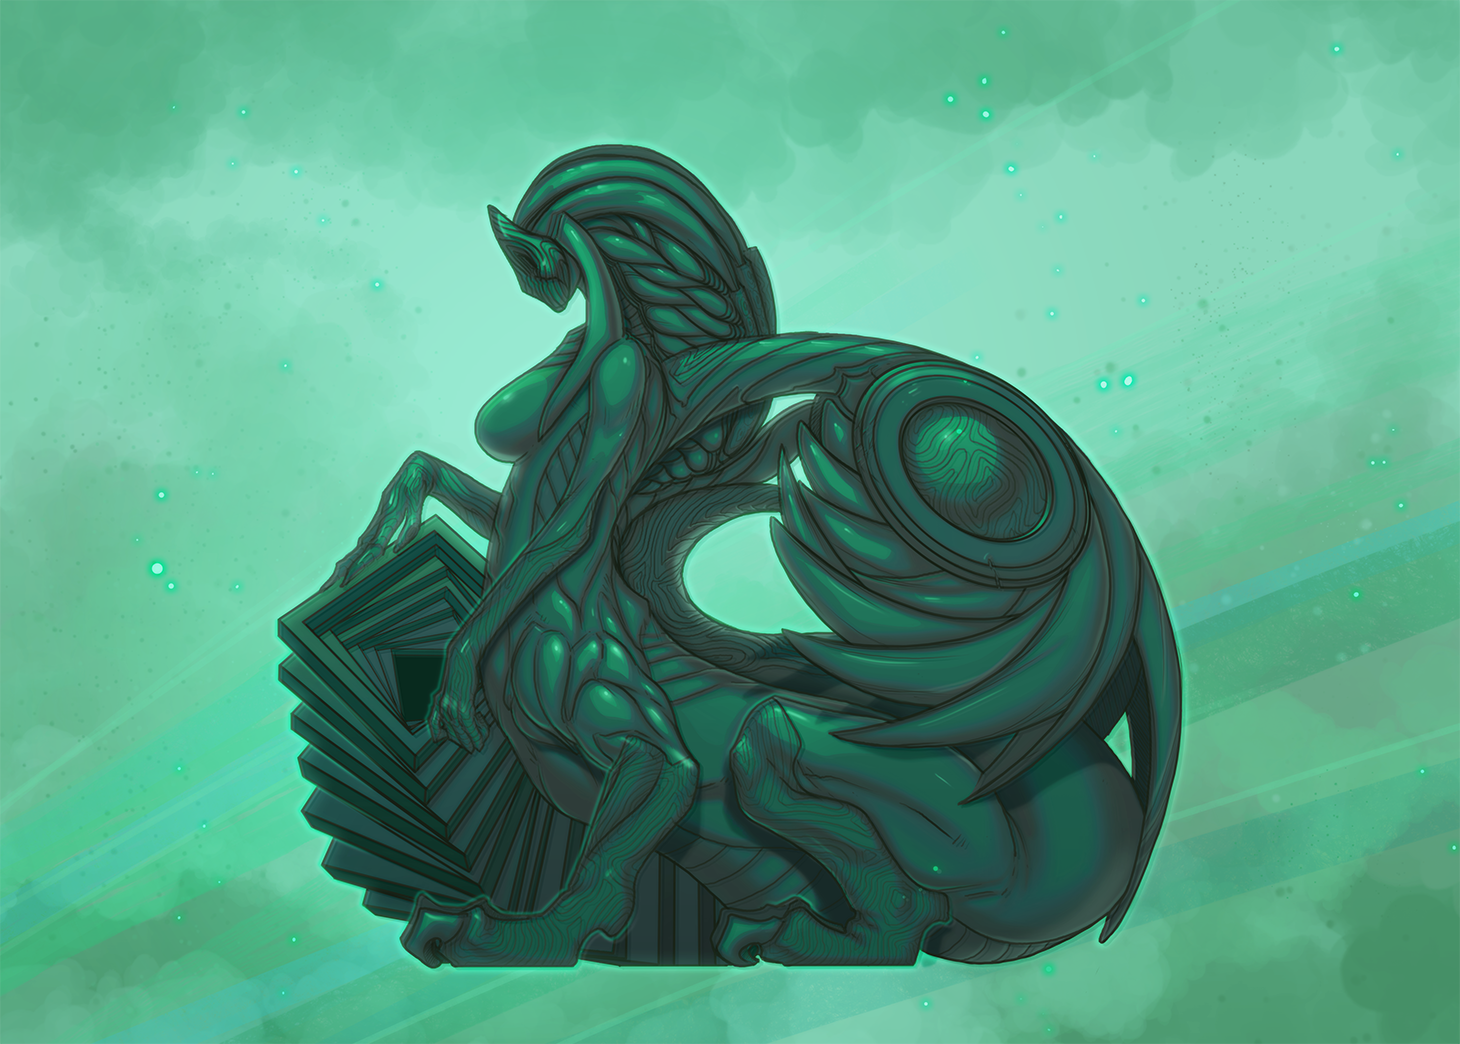 Jade Sphinx Art for Raid Boss Cooperative Tabletop RPG